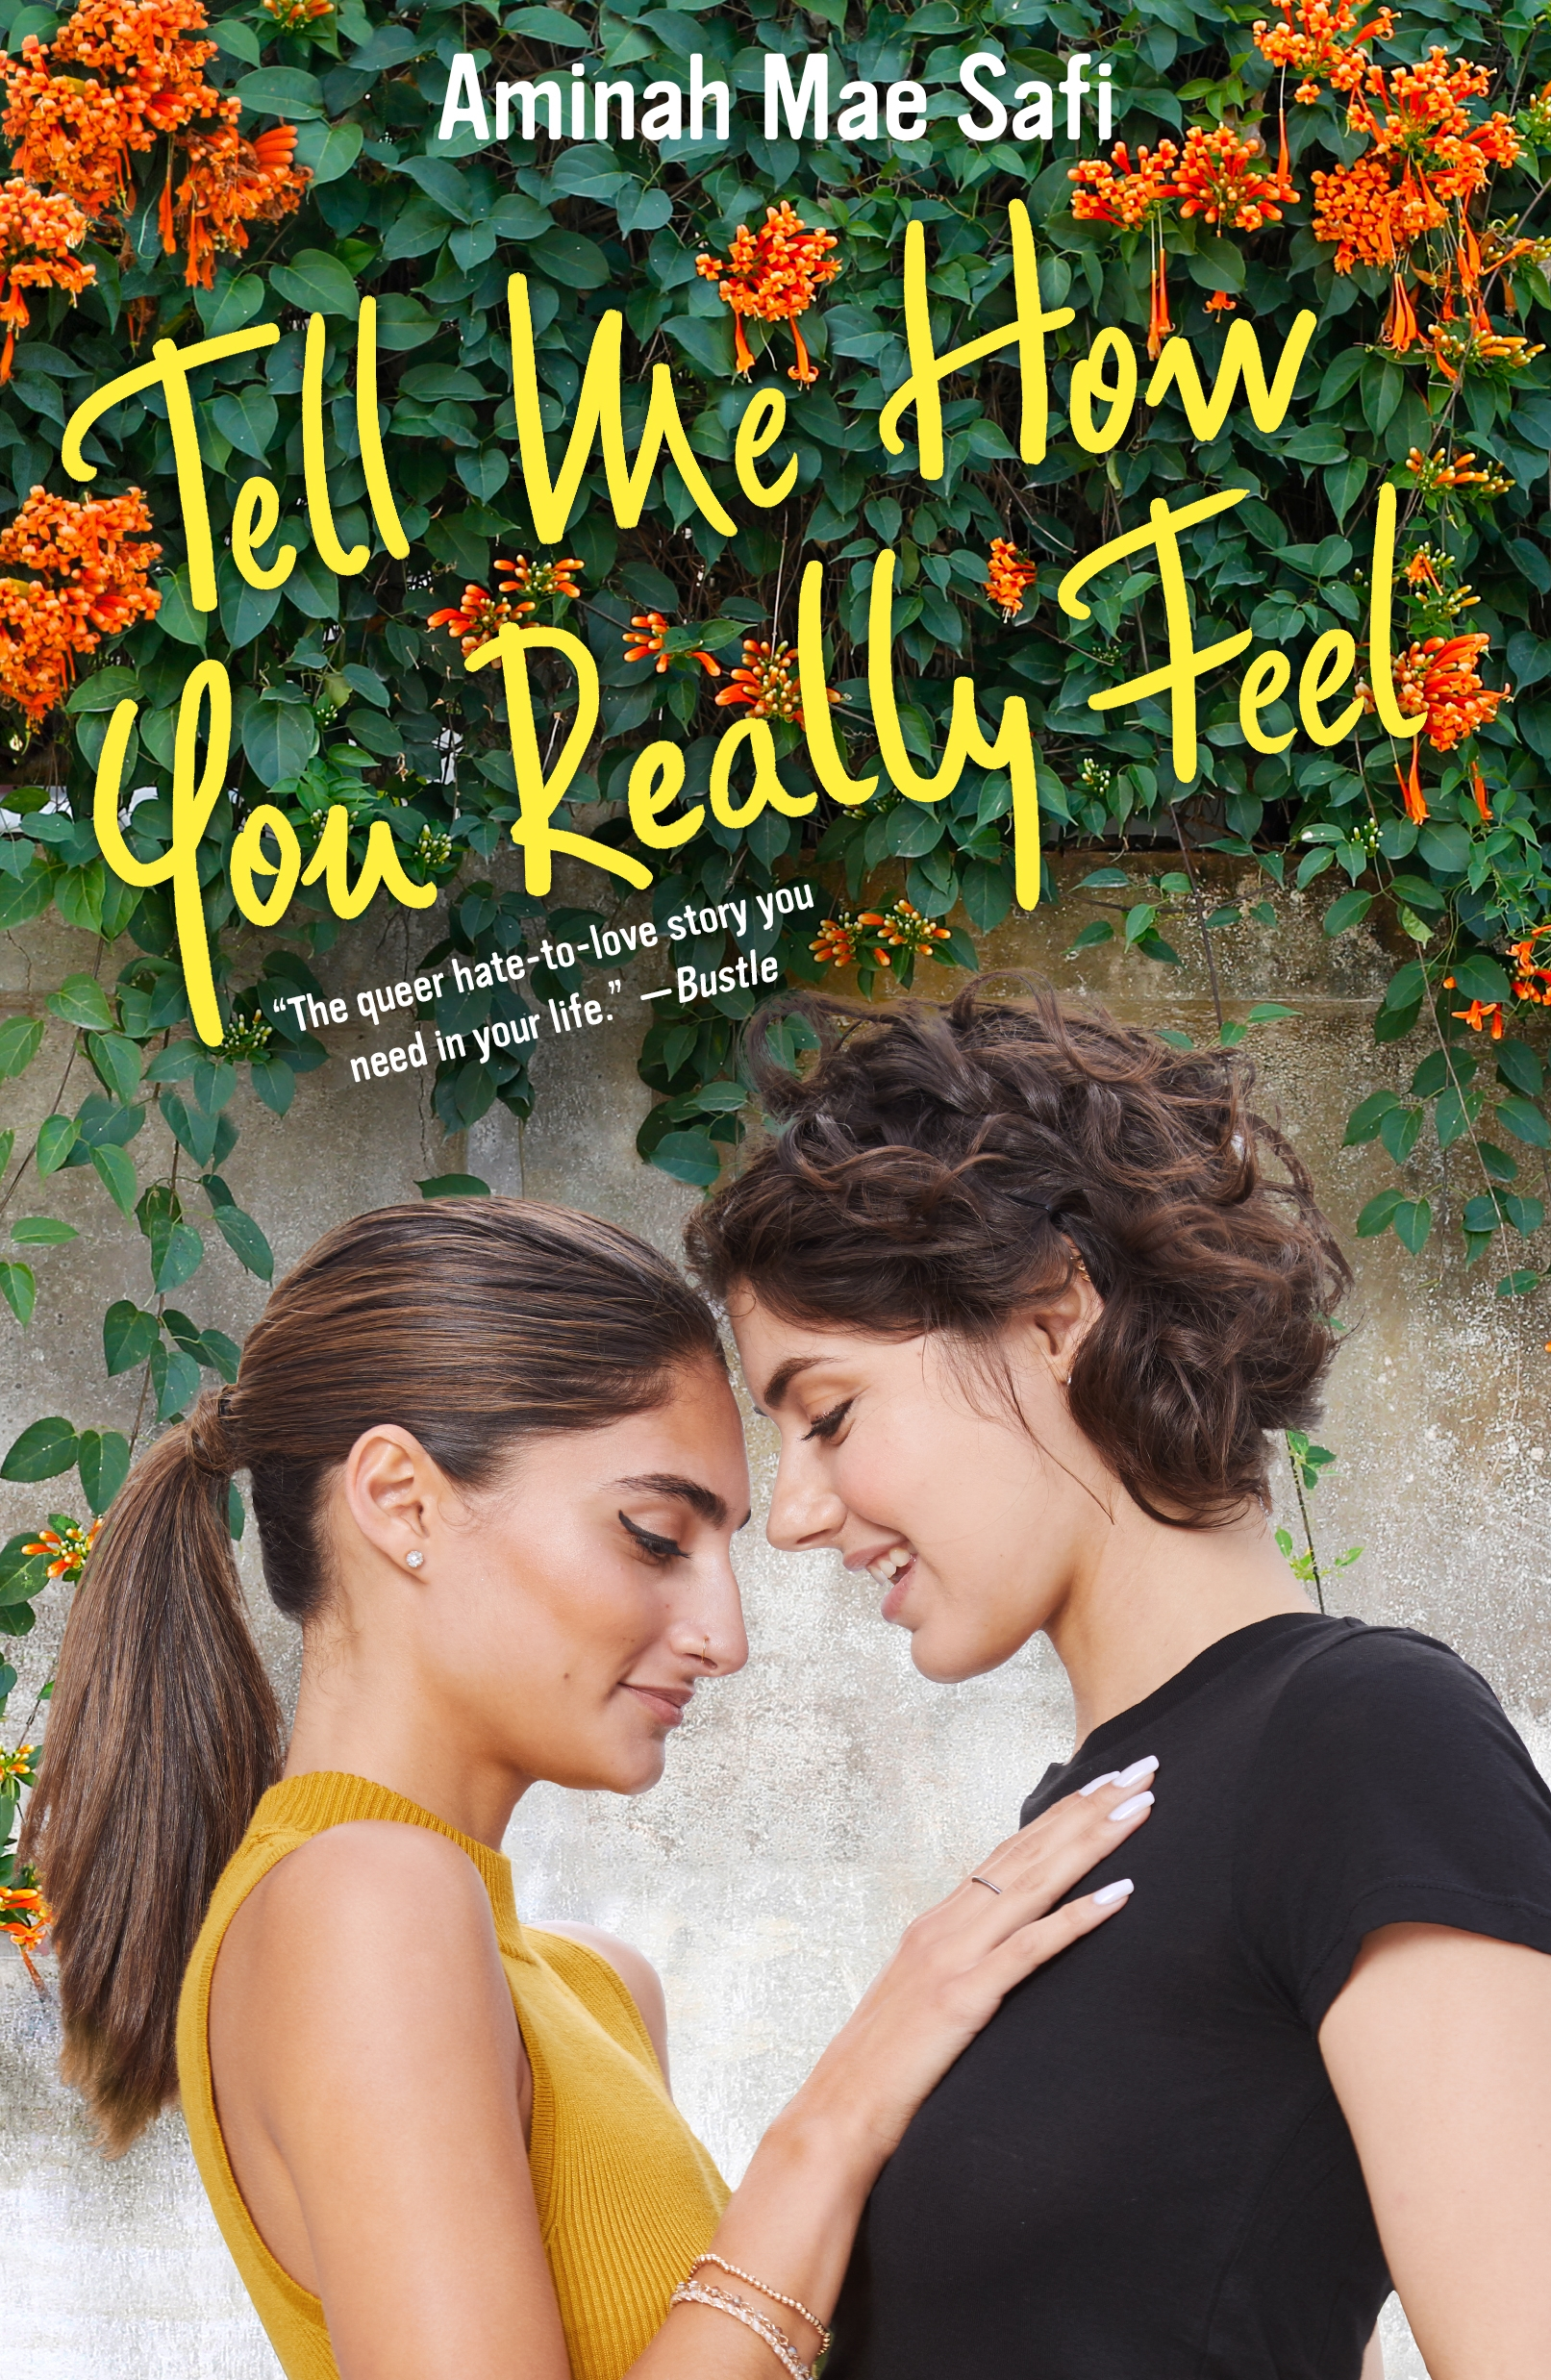 Tell me how you really feel cover image